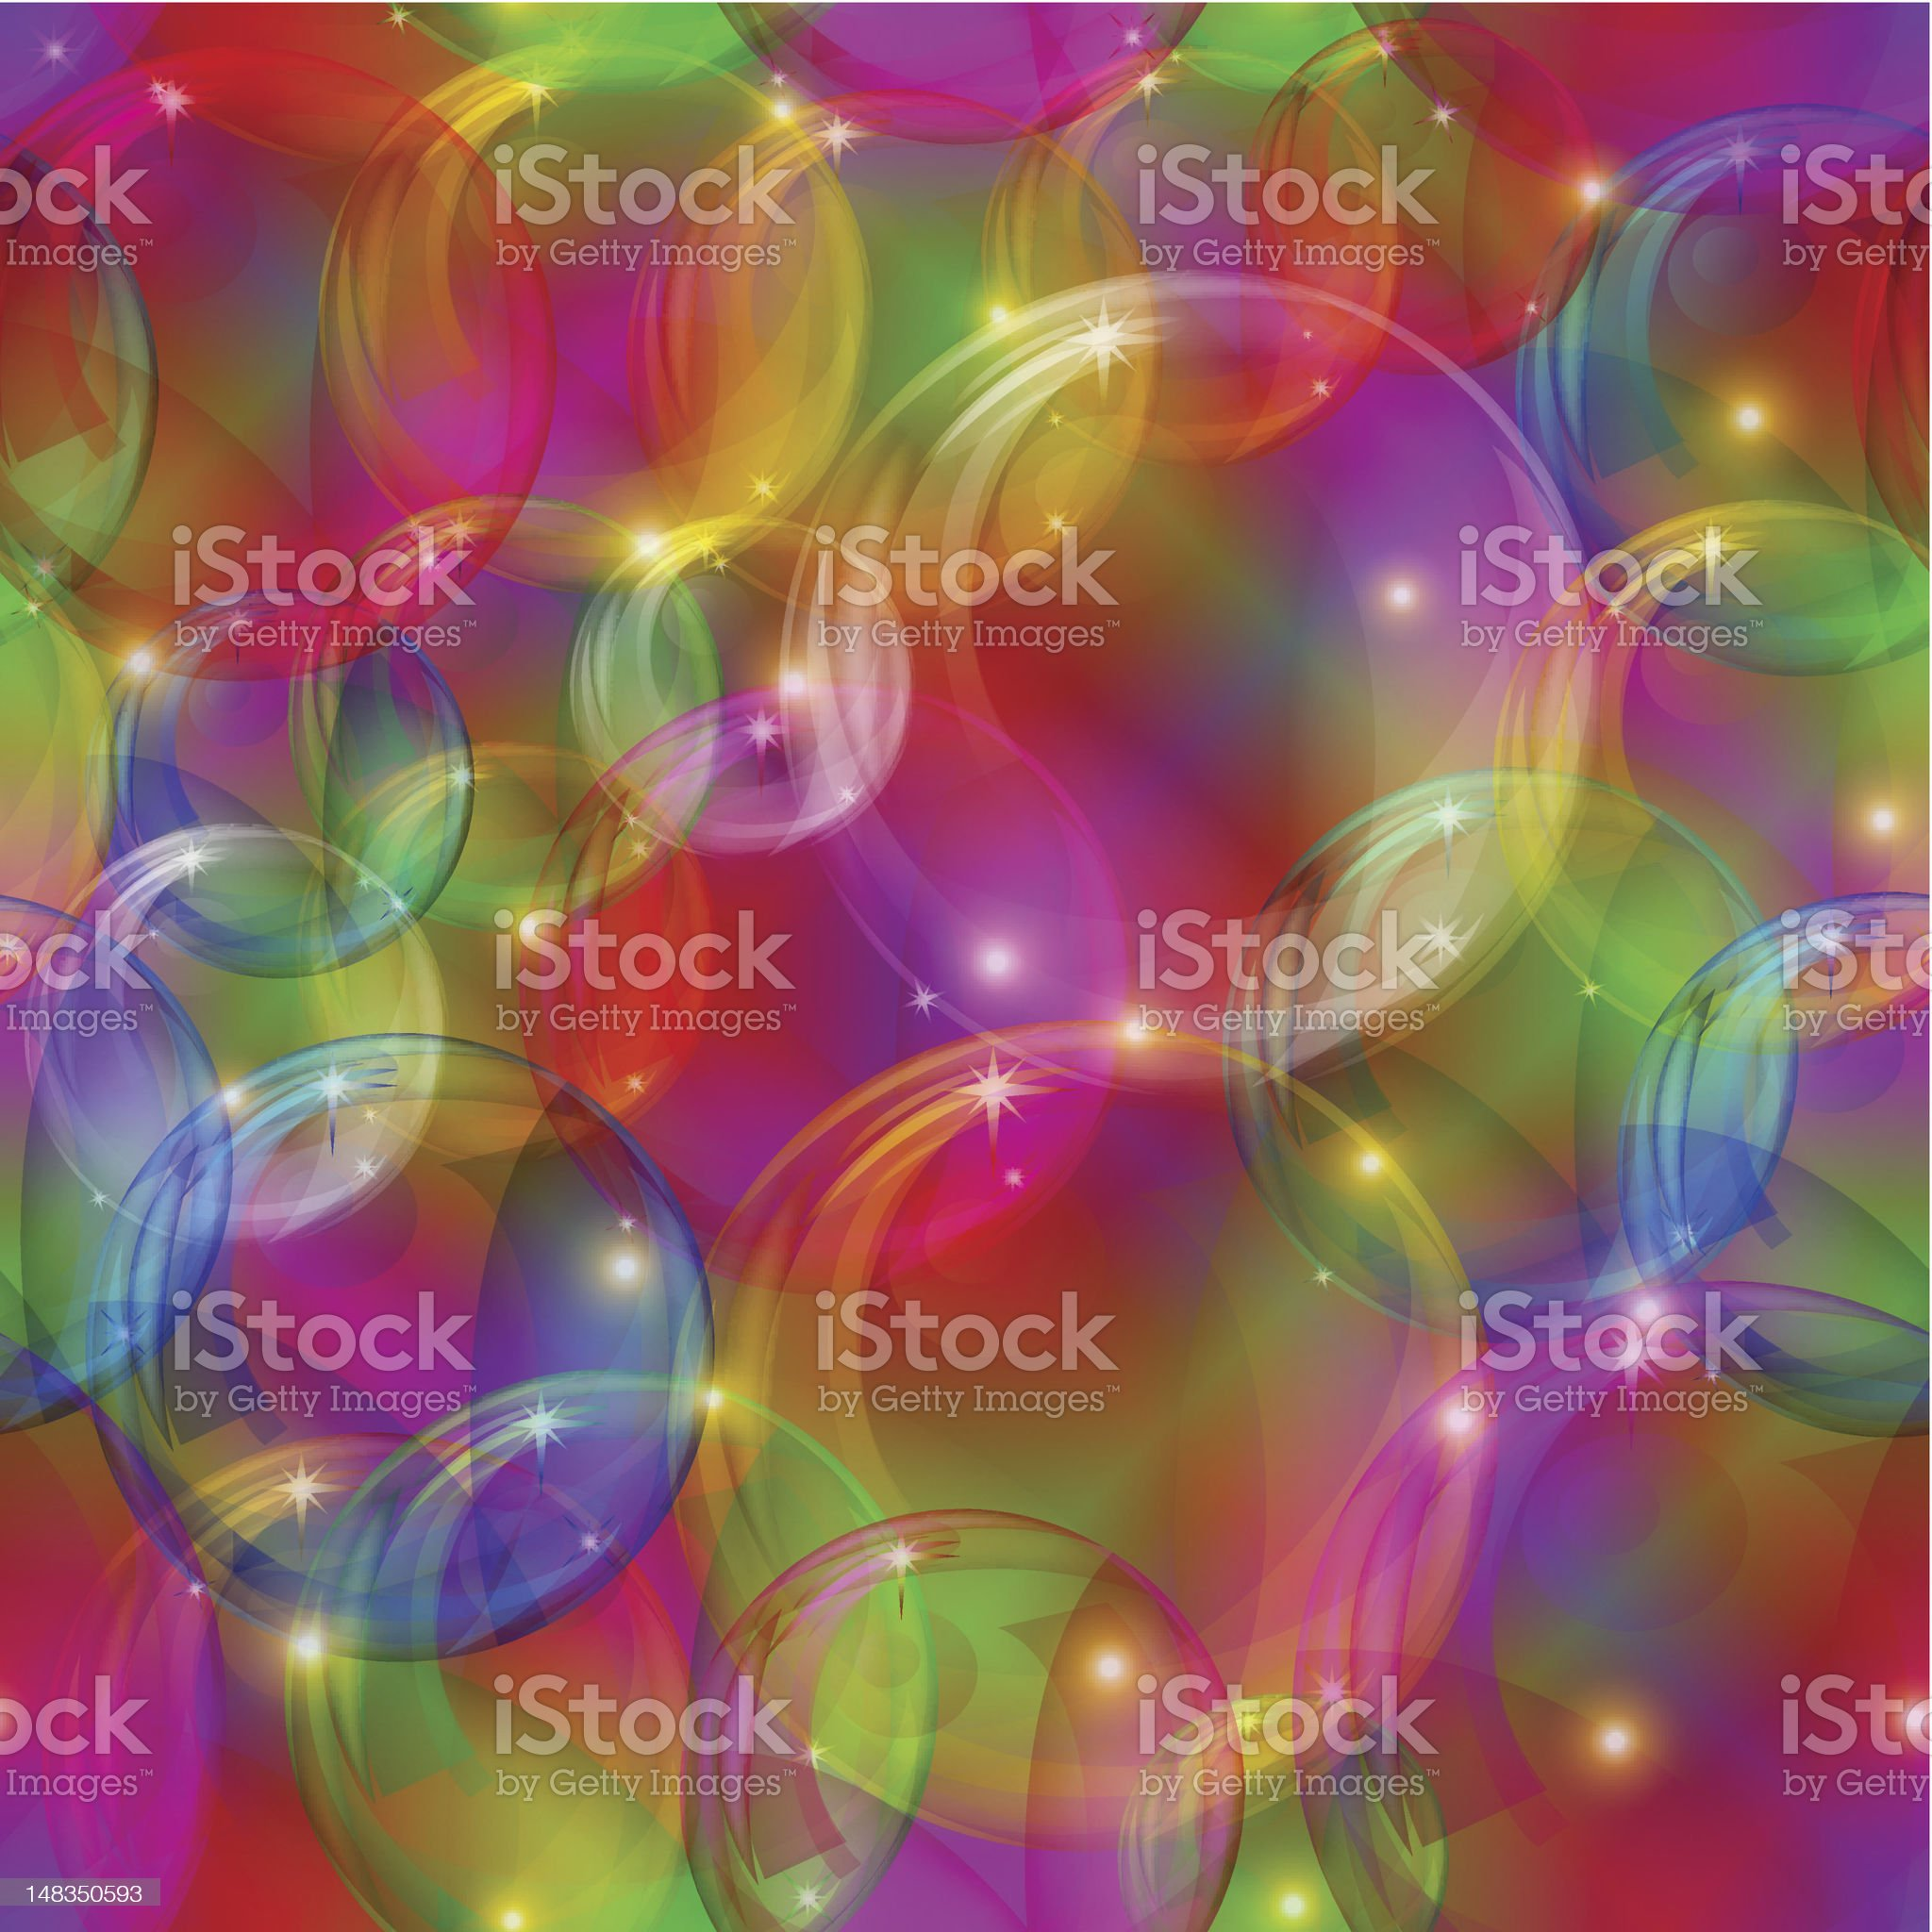 Bubbles seamless motley royalty-free stock photo